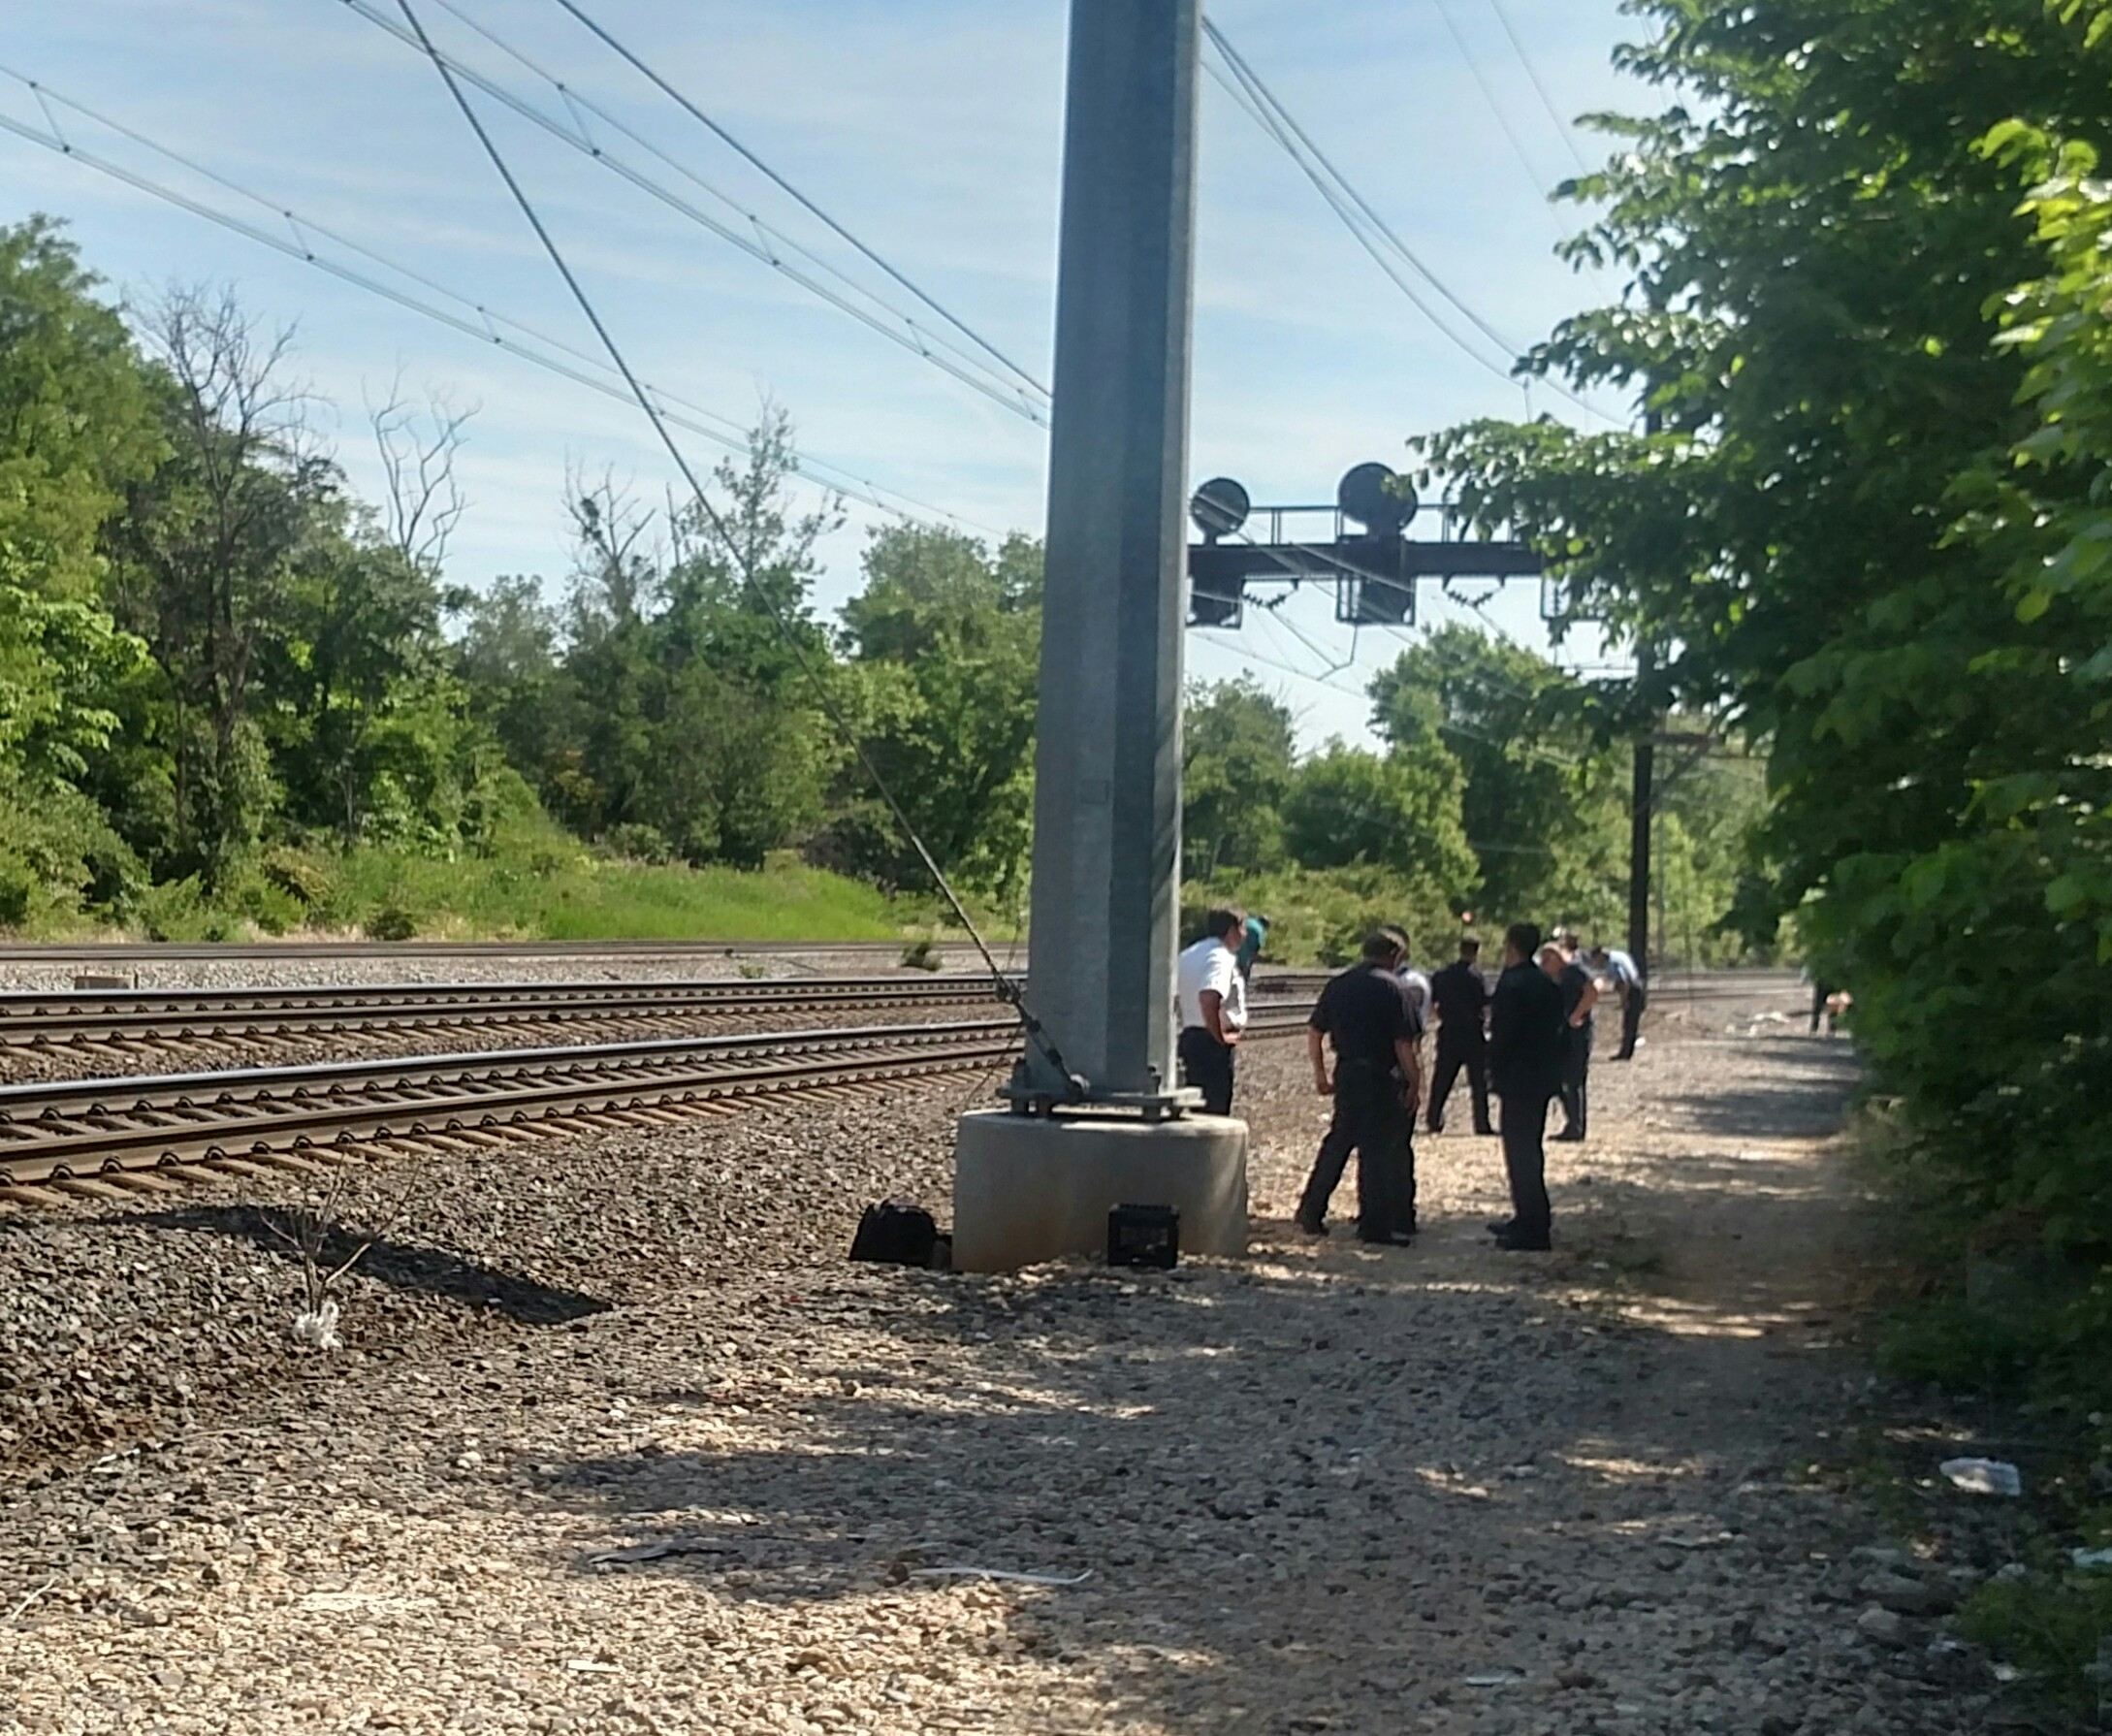 MARC's Penn Line service restored after person killed by train in Northeast D.C.